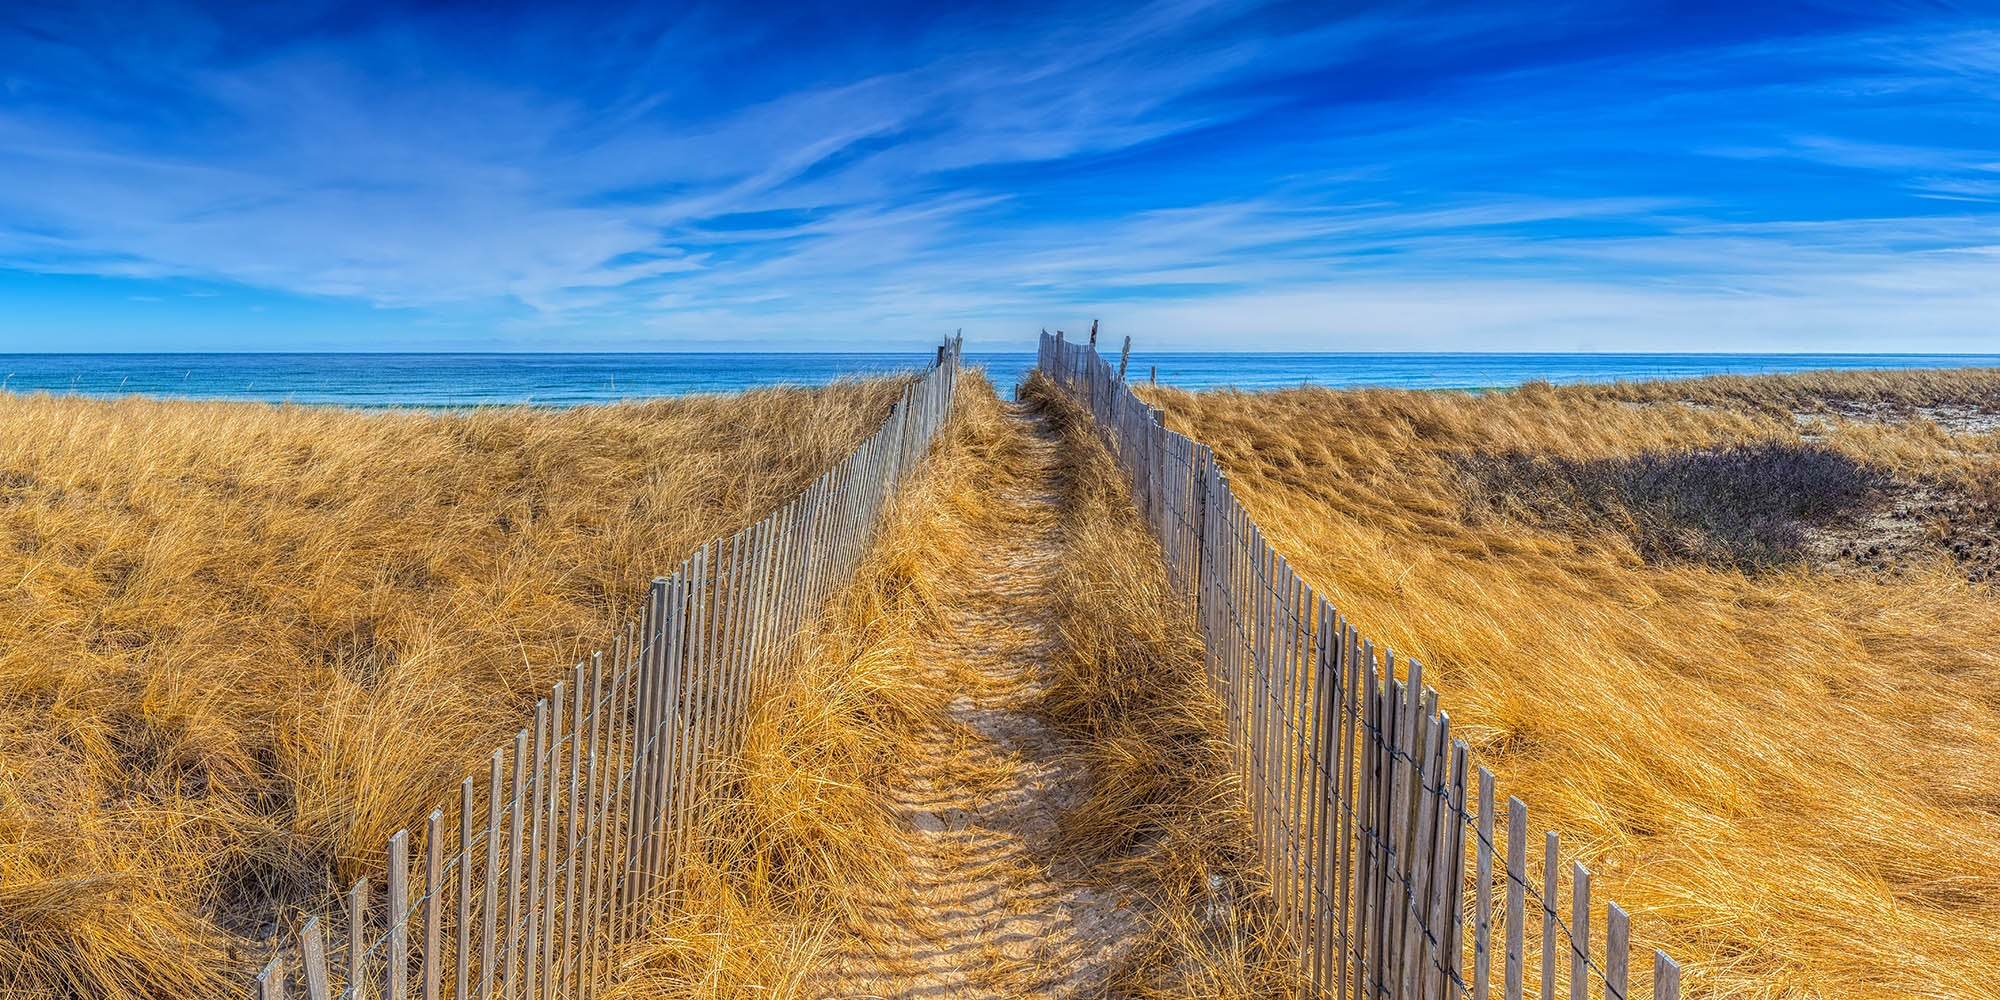 Dune path leading to the beach - Duxbury Beach, Massachusetts